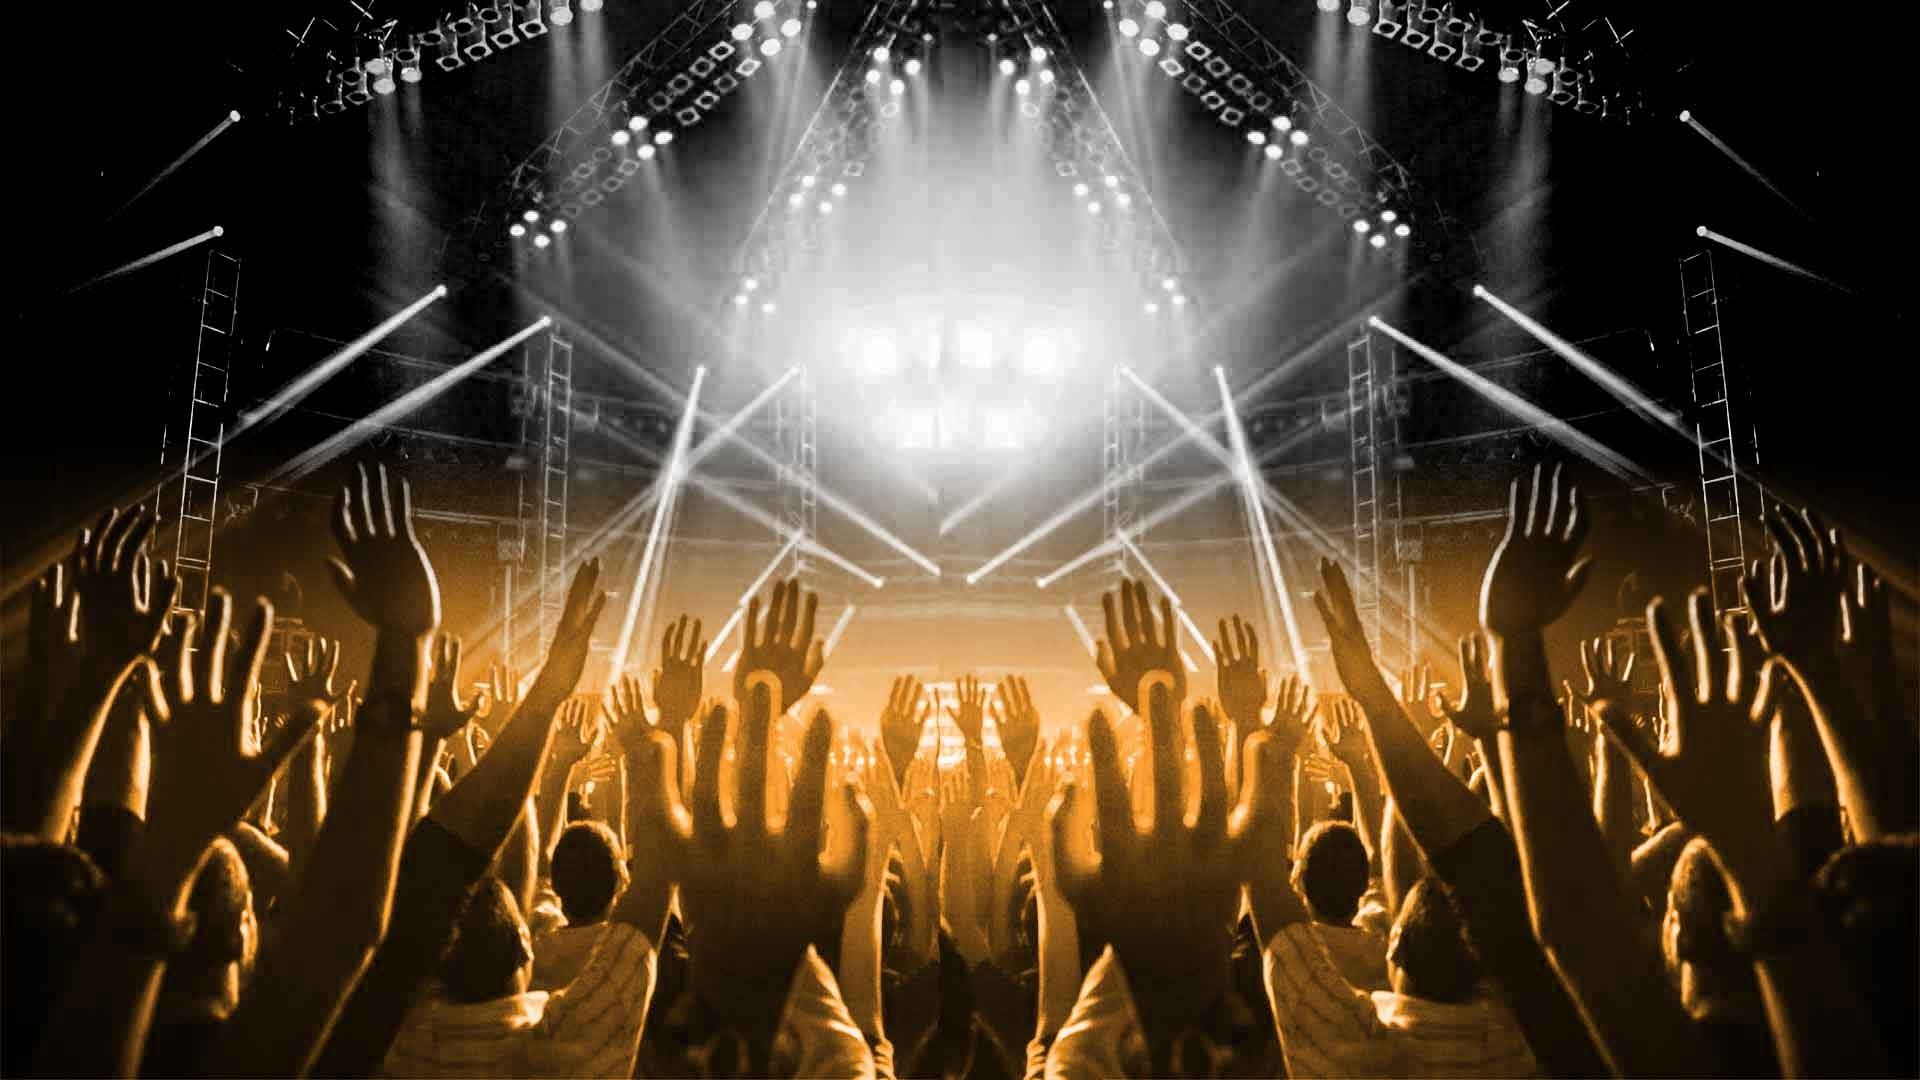 Hd Wallpaper For Android Mobile 5 5 Inch Concert Background 183 ① Download Free Cool Full Hd